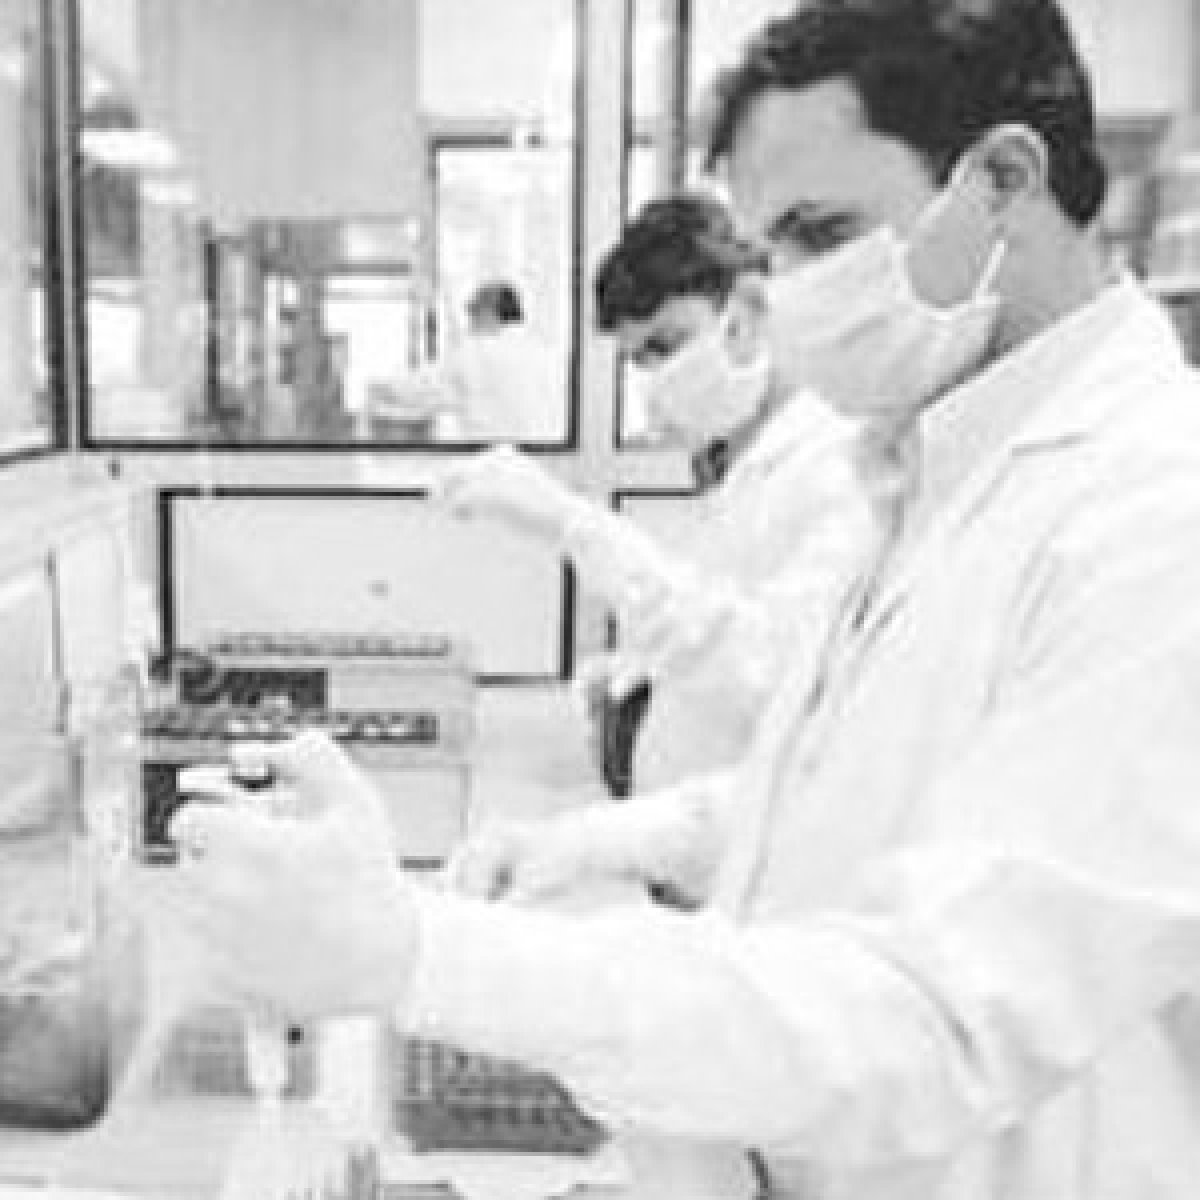 Promoters haven't pledged shares, says Torrent Pharma